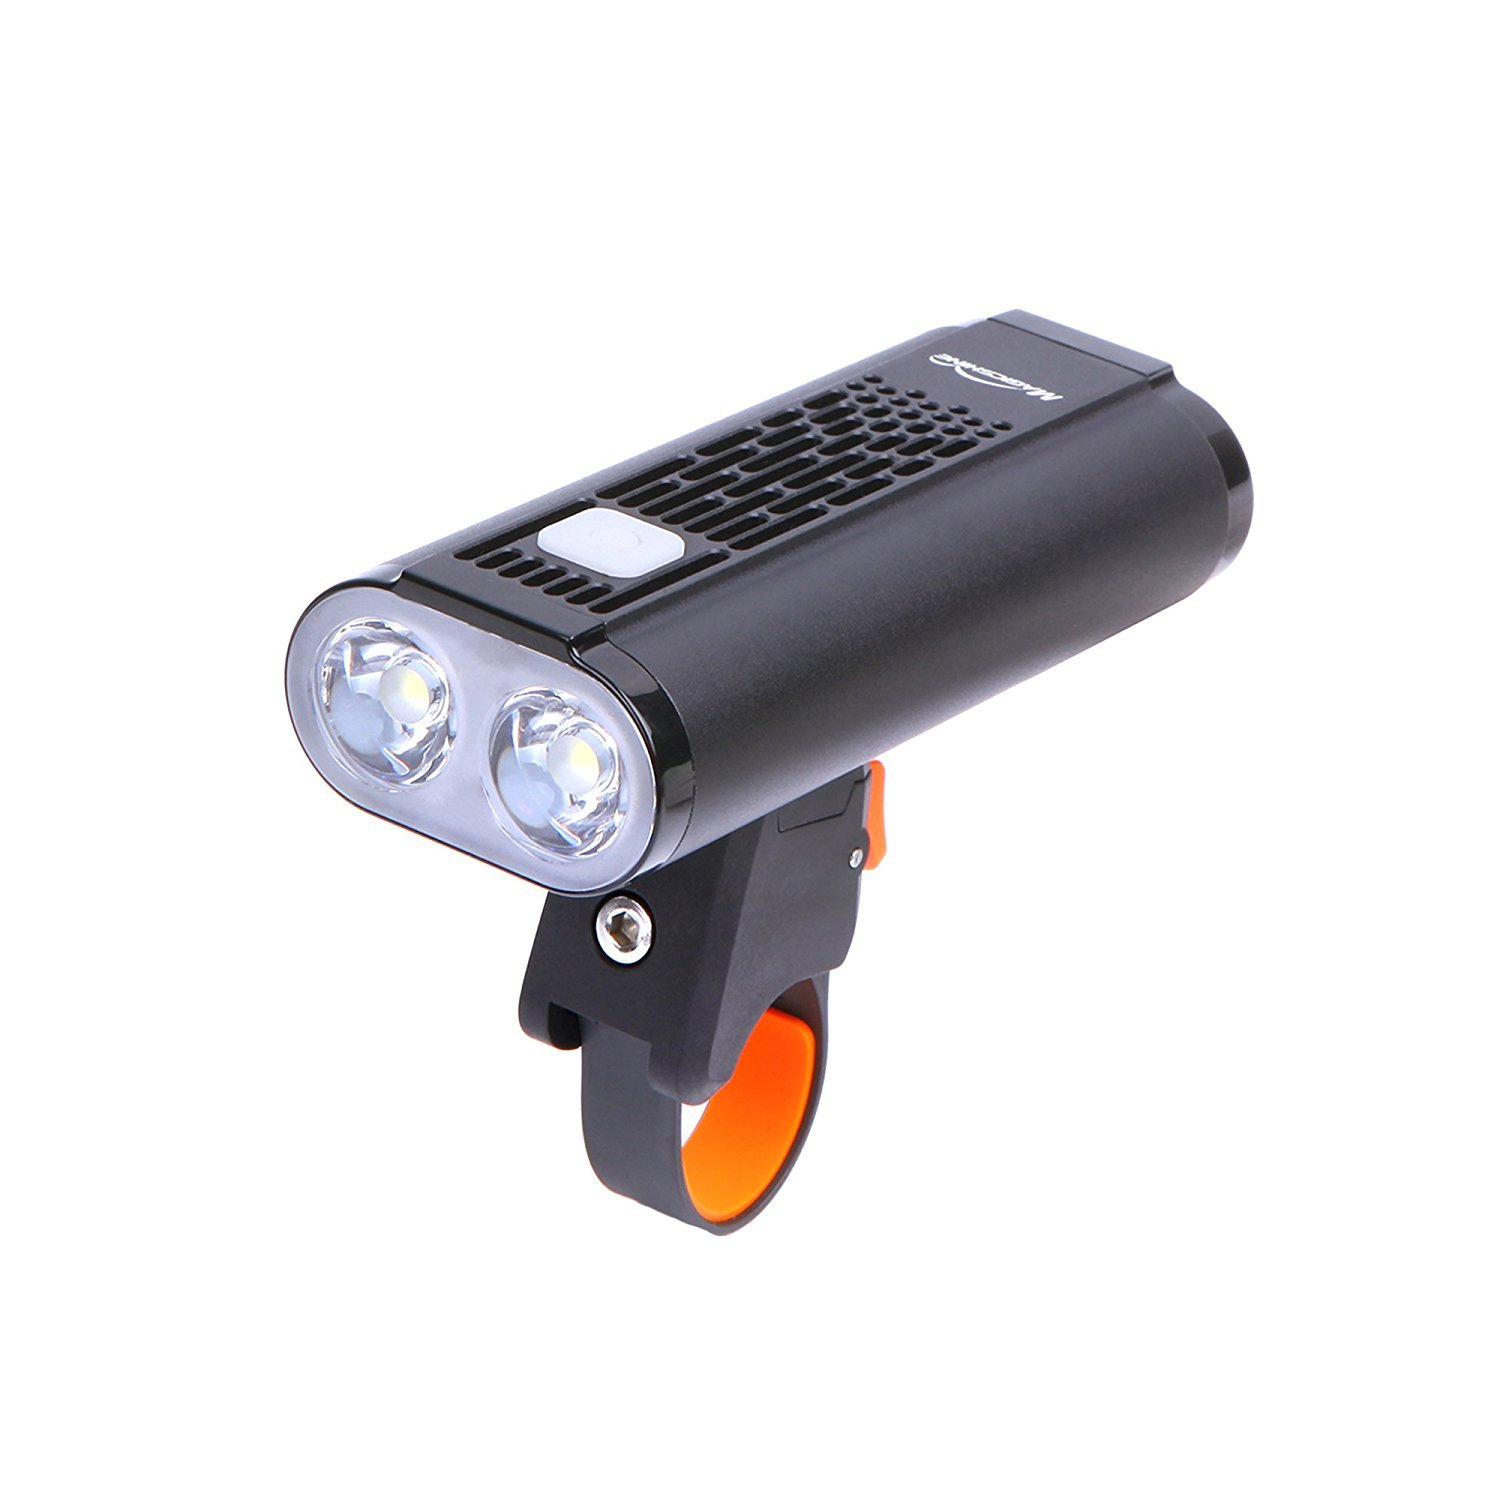 Magicshine 2018 New Bike Lights, Monteer 1400 Bike Headlight, 2xCREE XM-L2 LEDs, 1400 lumens of max Output, All in one Design Road Bike Front Light USB Rechargeable and Battery Cartridge Design